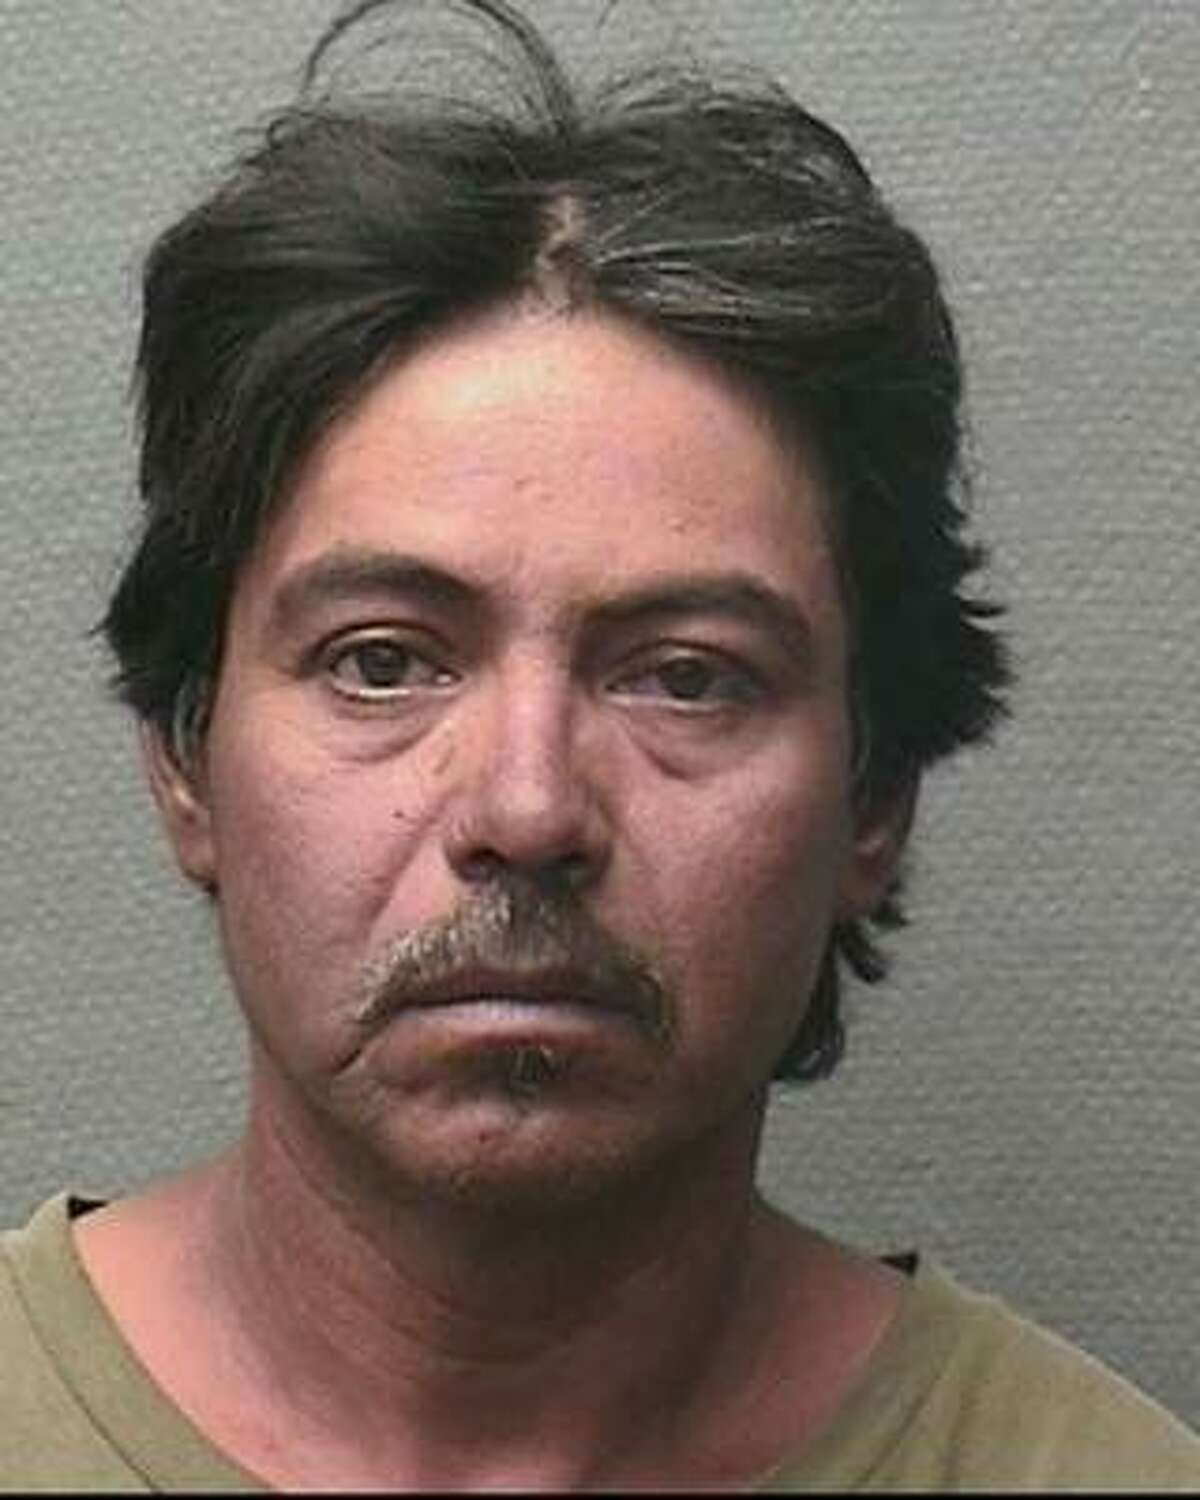 Andres Nava-Maldonado, 41, has been charged with capital murder.